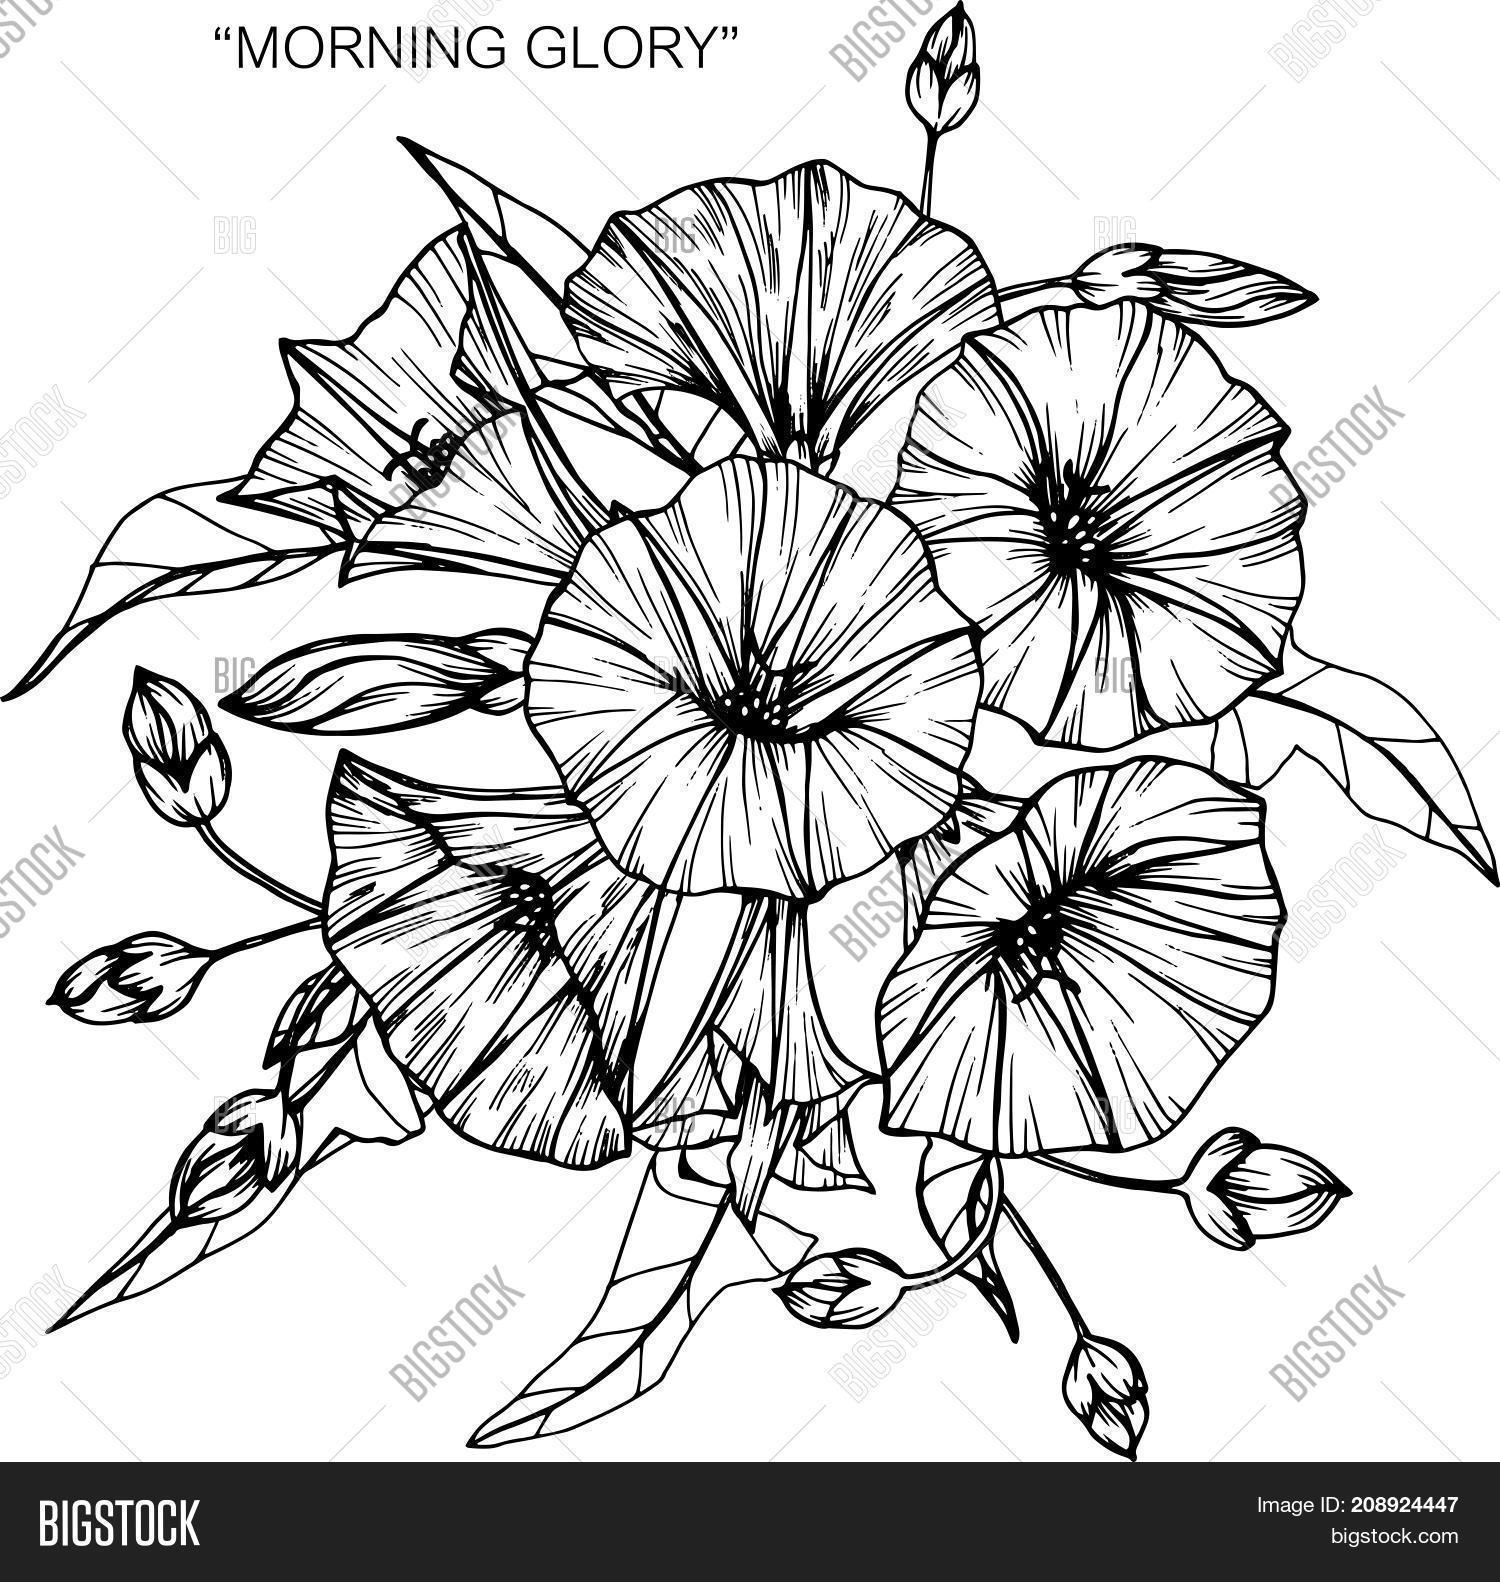 Bouquet of morning glory flowers drawing black and white with line art illustration